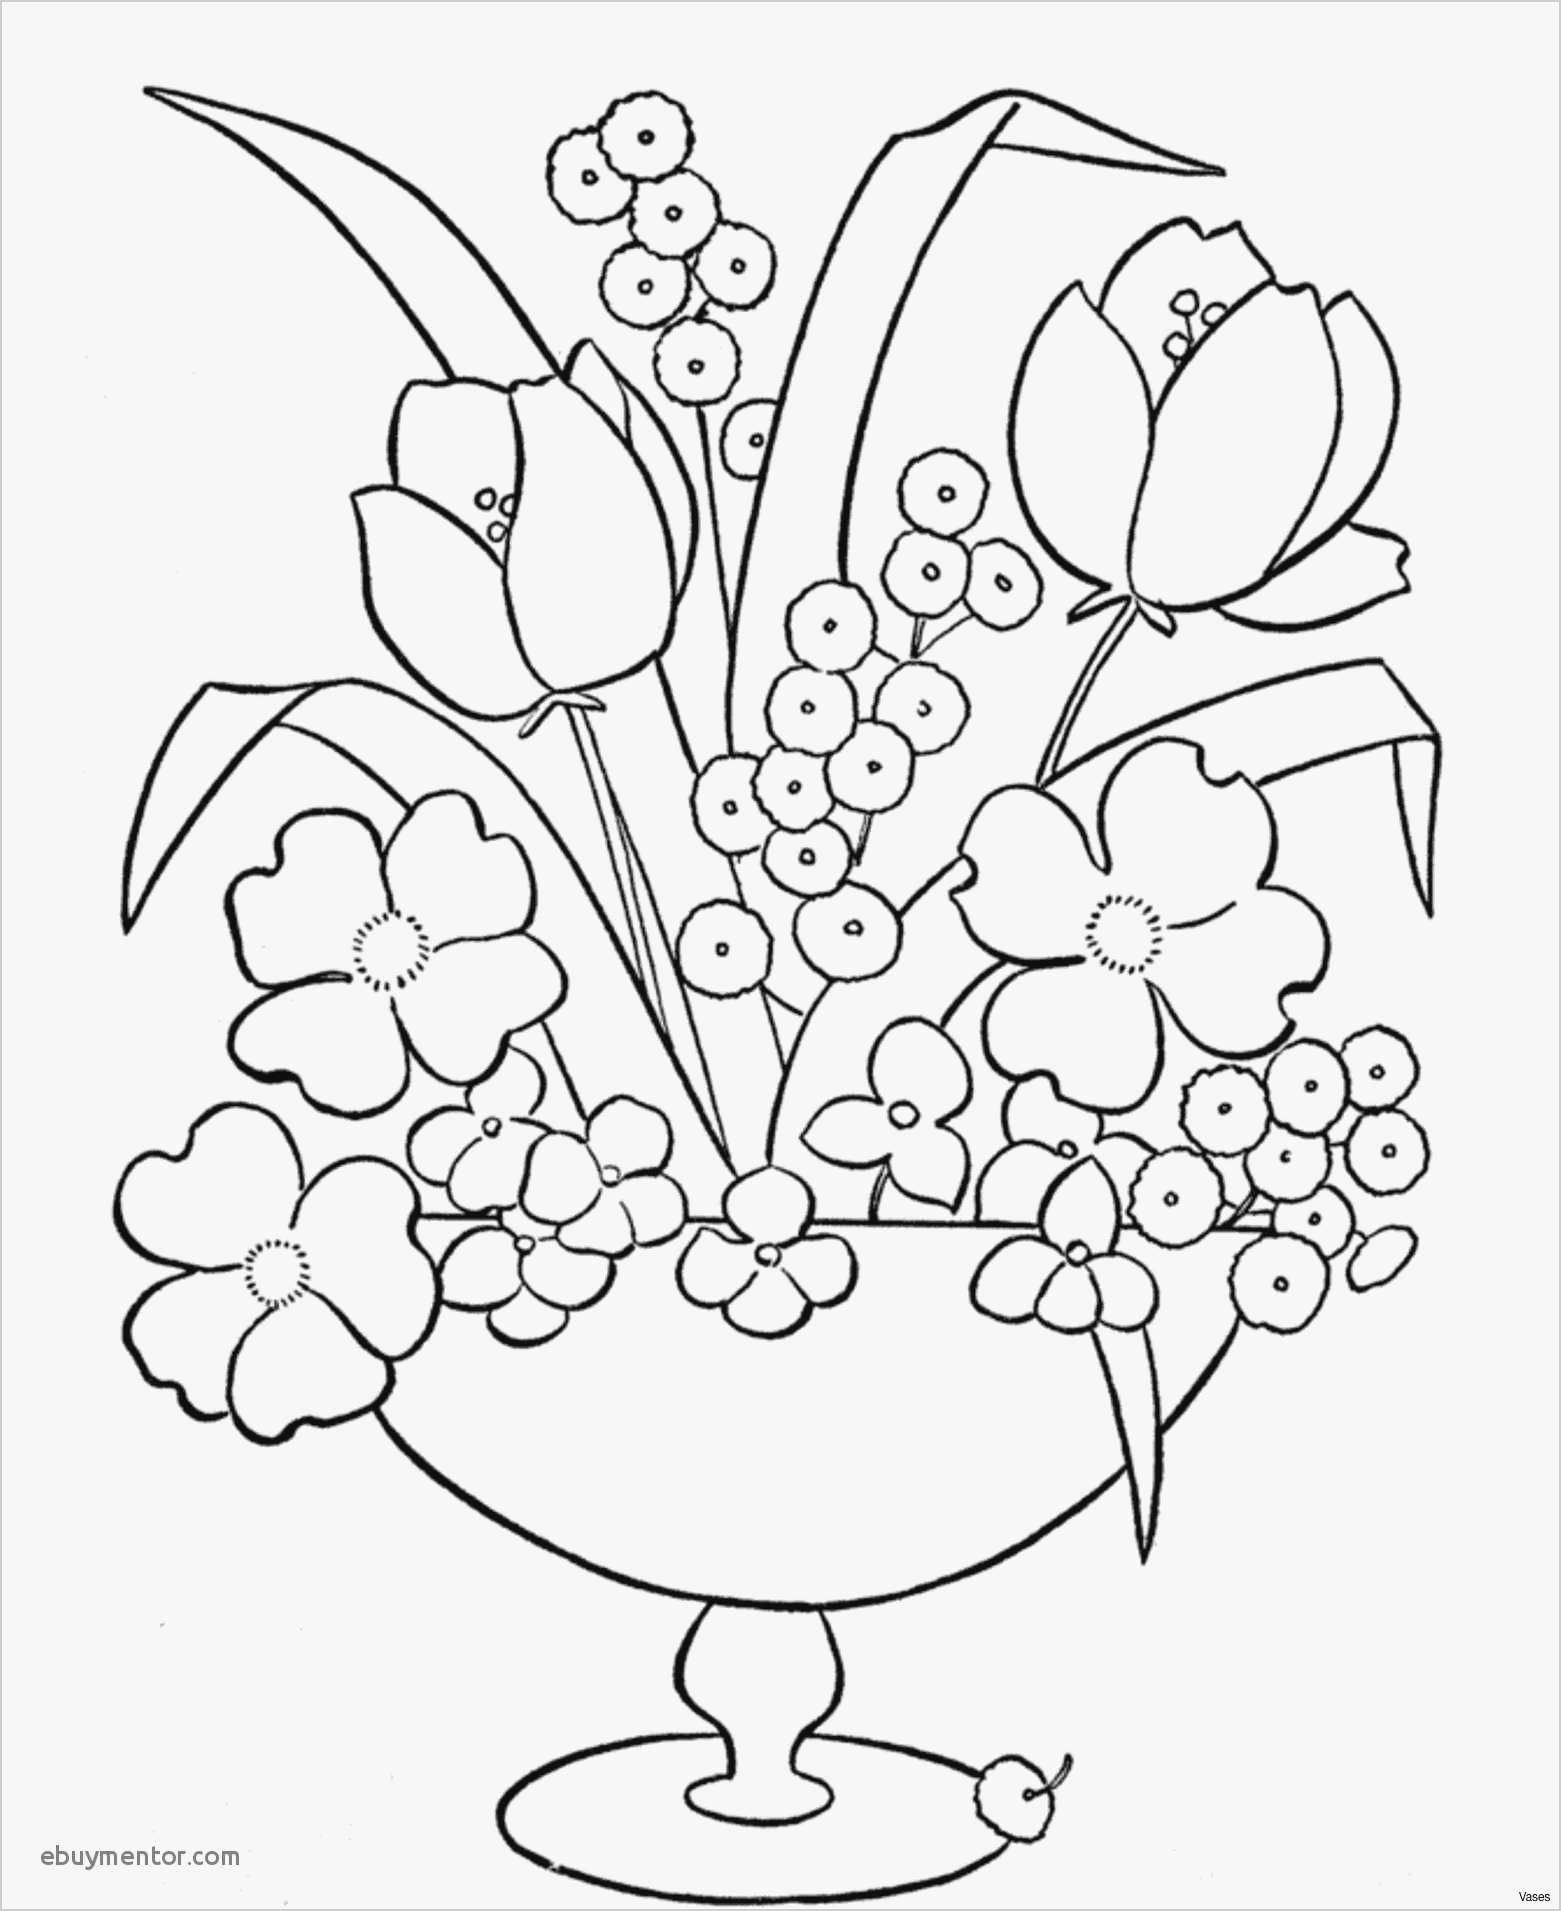 coloring pages of birds and flowers Download-Captivating Coloring Pages Birds And Flowers As Well As Coloring Pages For Girls Lovely Printable Cds 0d – Fun Time New 7-k